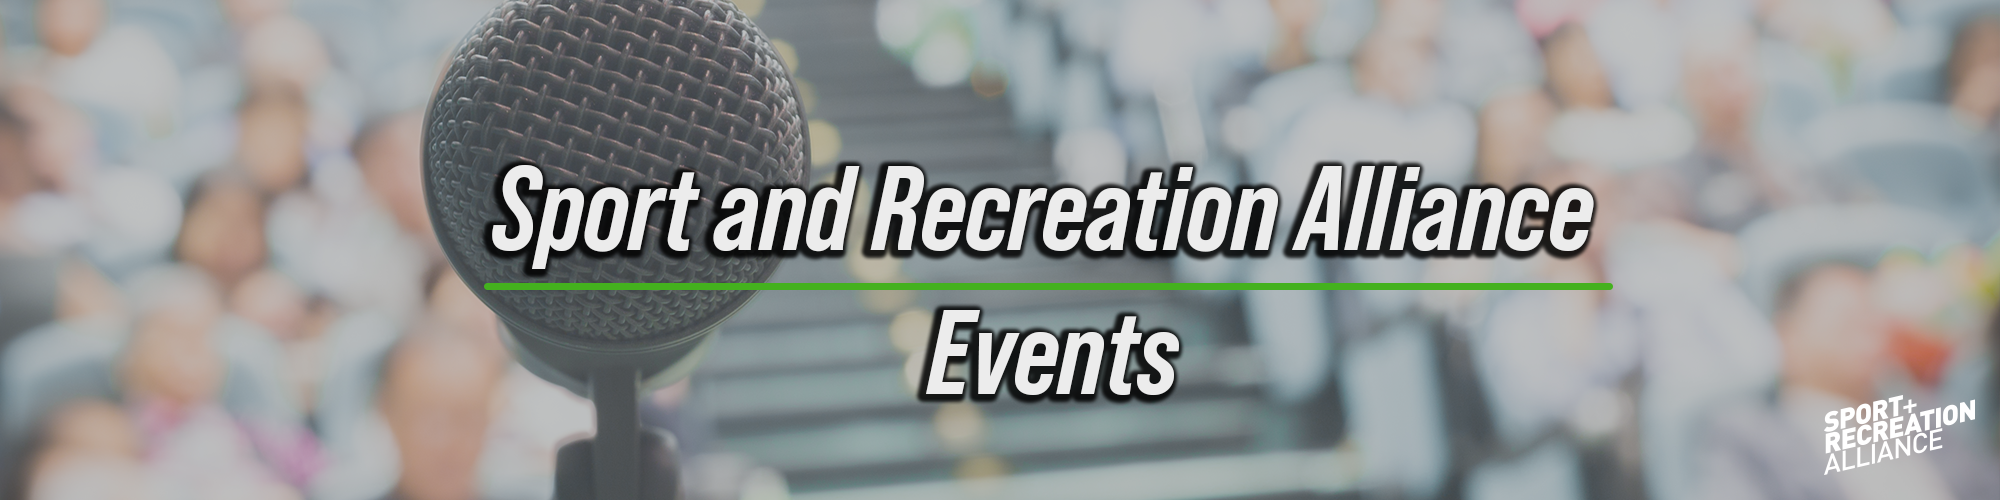 events header  ()